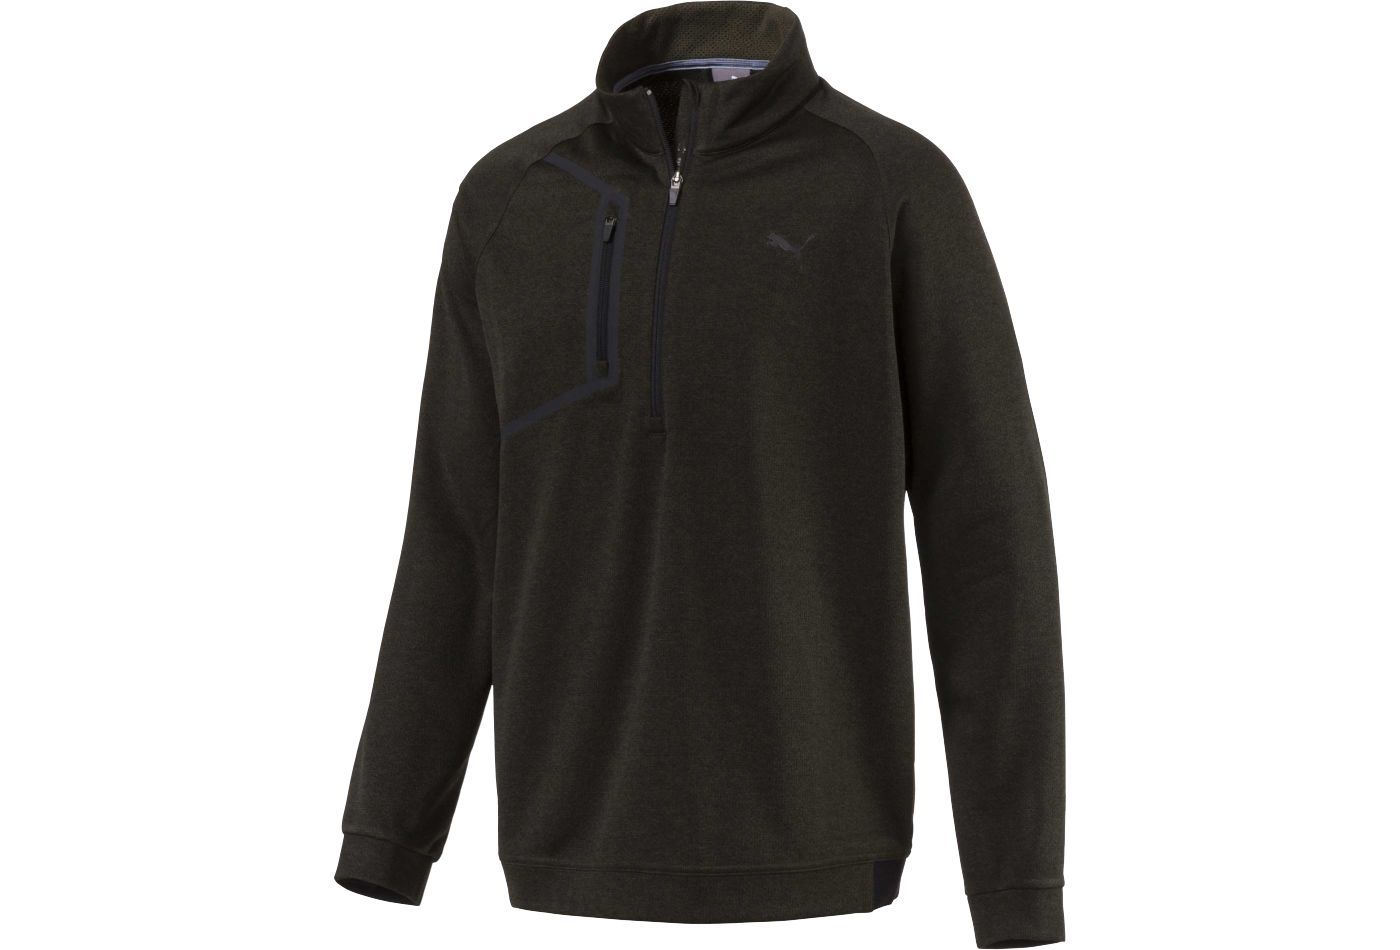 PUMA Men's Envoy Golf ¼ Zip